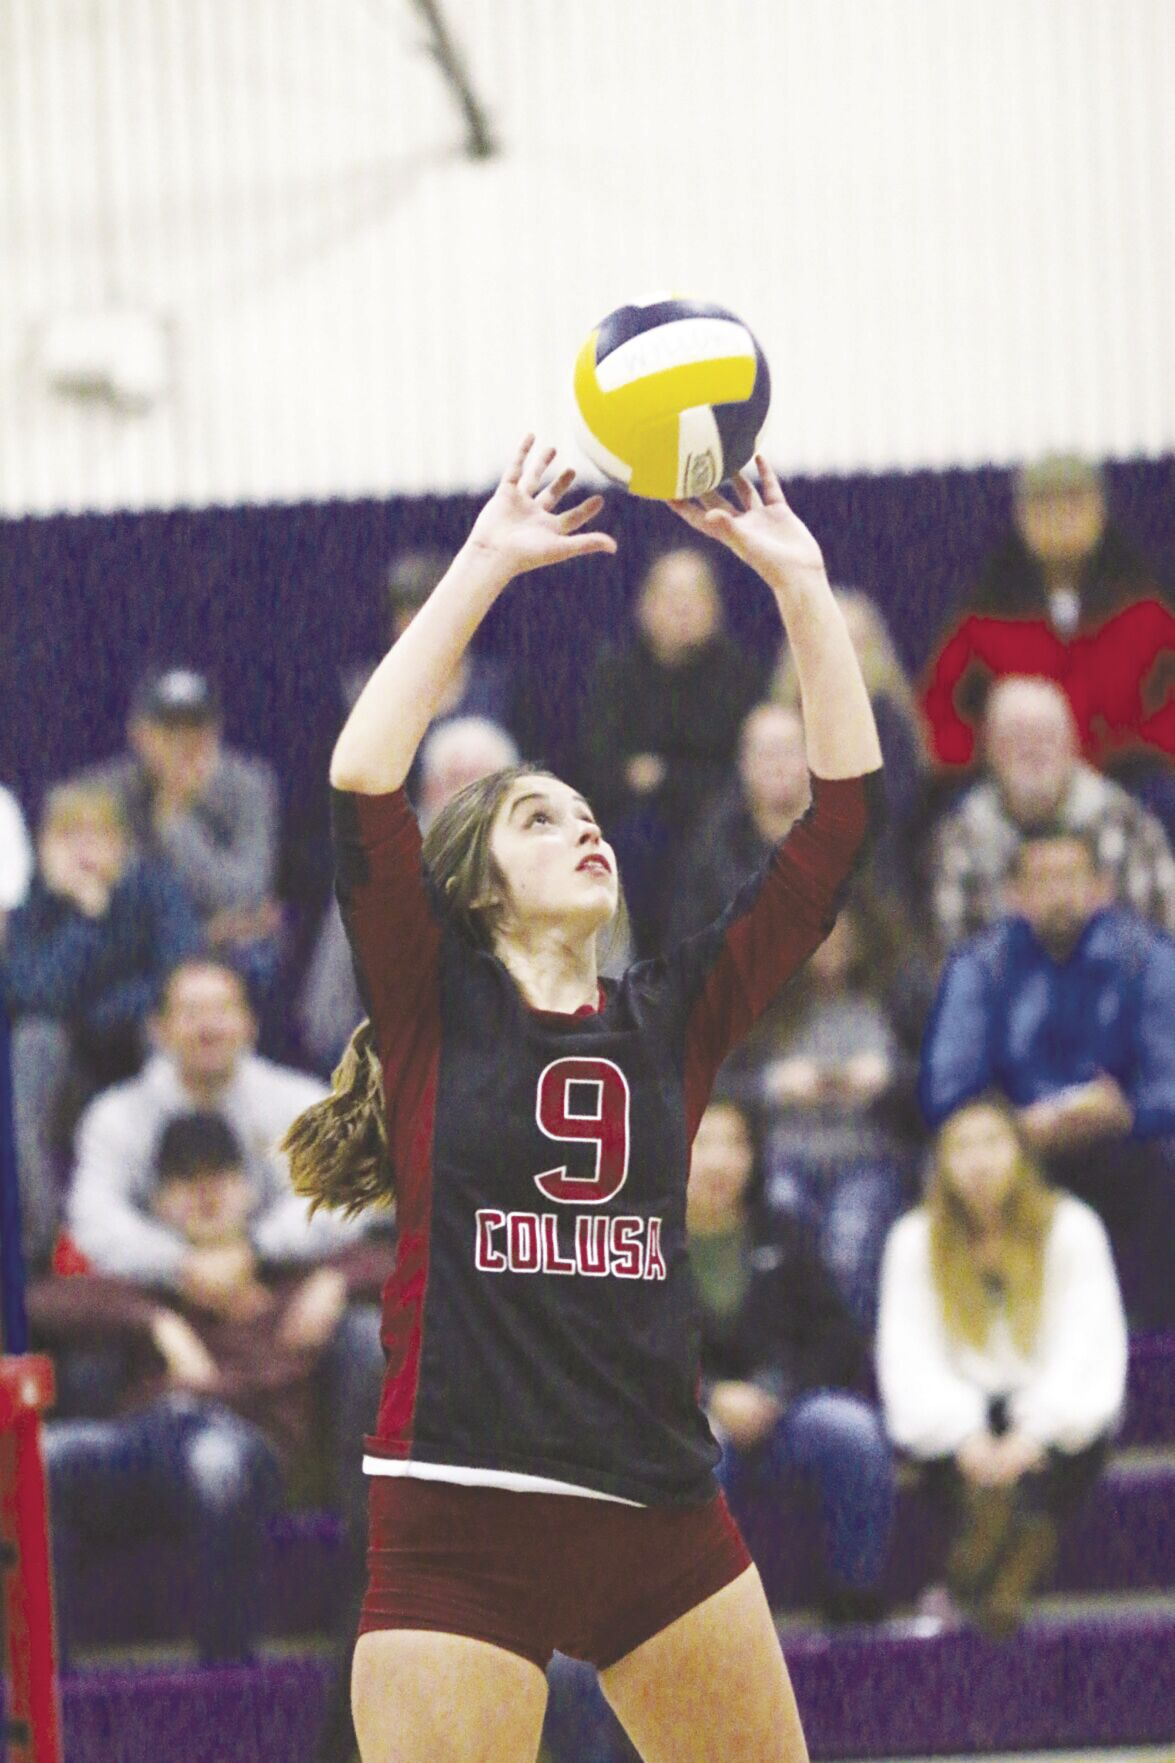 Colusa gets back on the court as defending champs